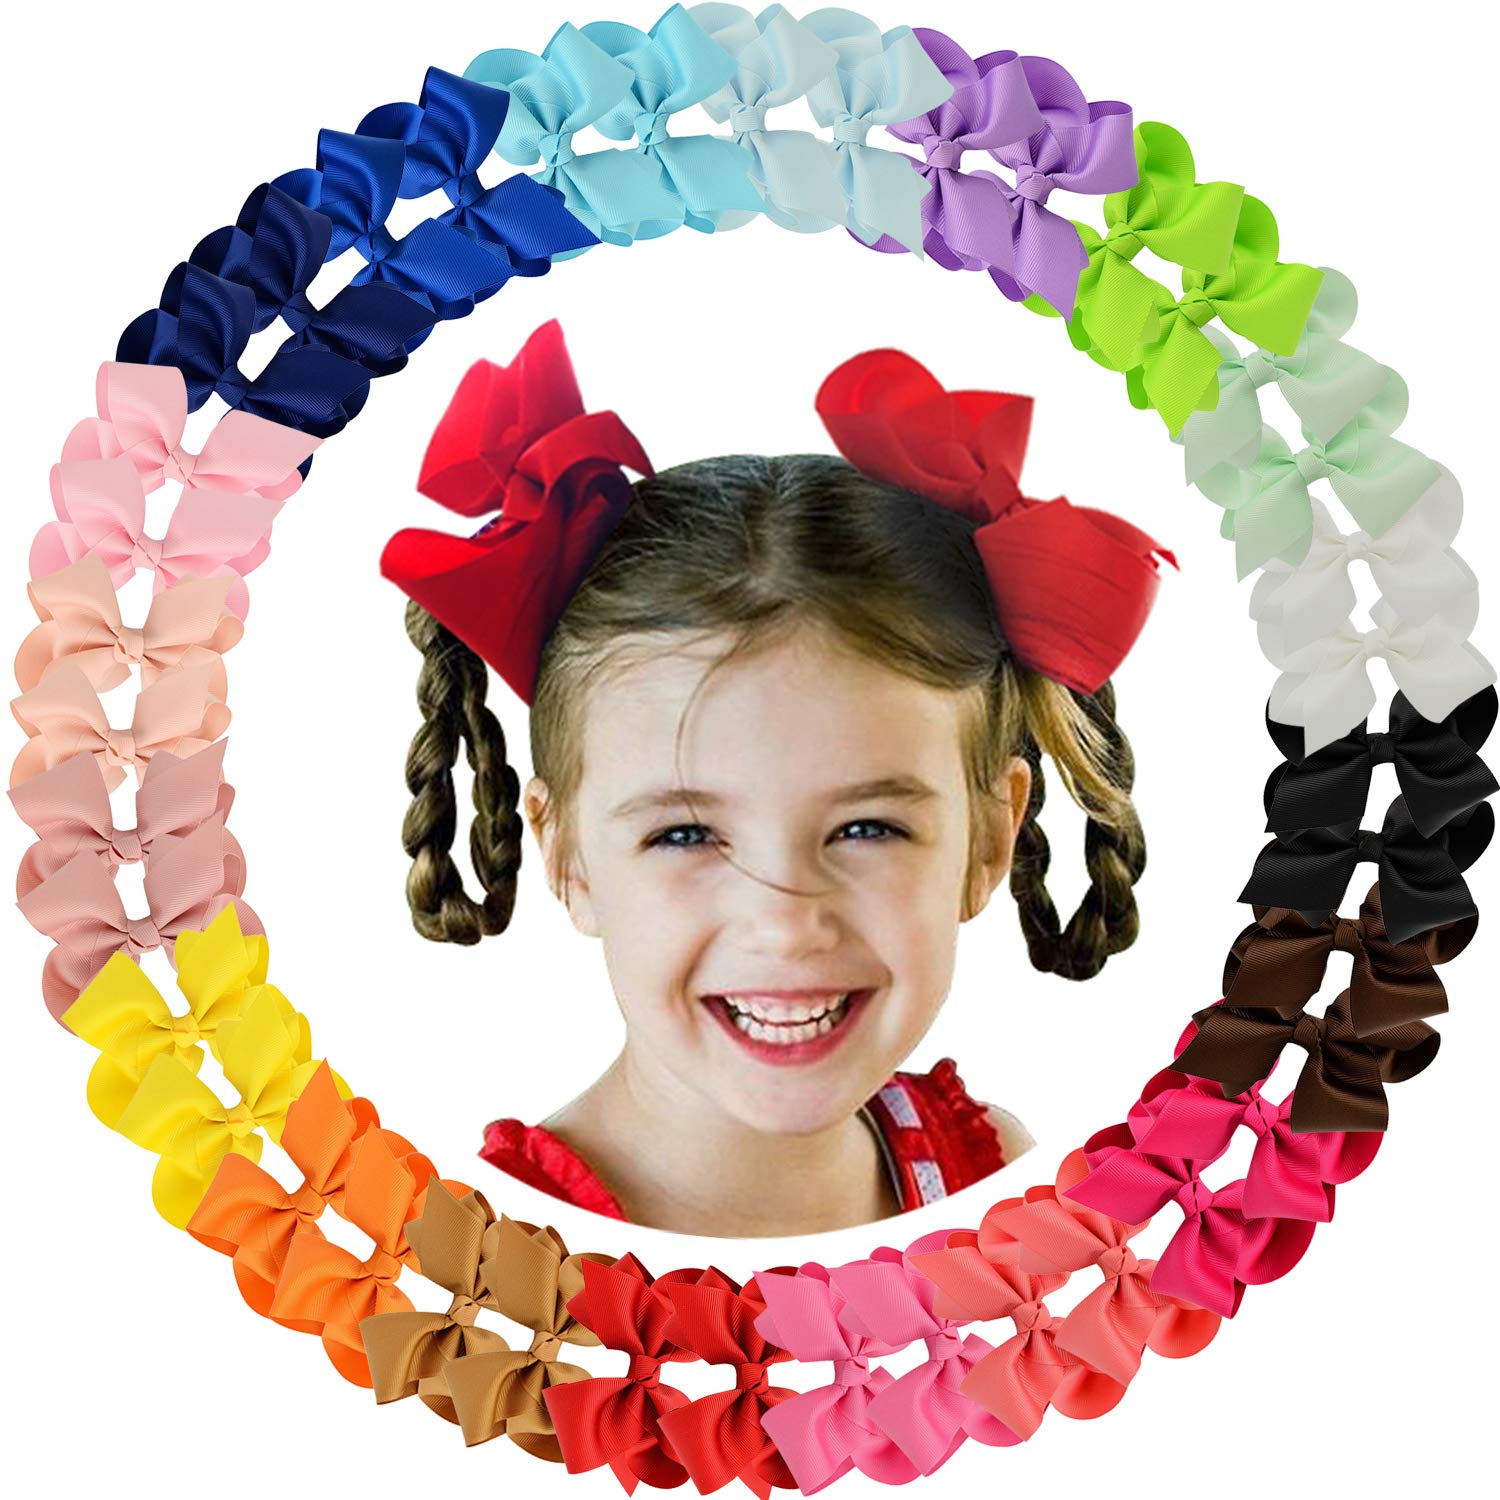 """ALinmo 40Pieces 4.5"""" Big Boutique Grosgrain Ribbon Hair Bow Alligator Clips Hair Accessories for Baby Girls Infants Toddler Teens Kids and Children"""